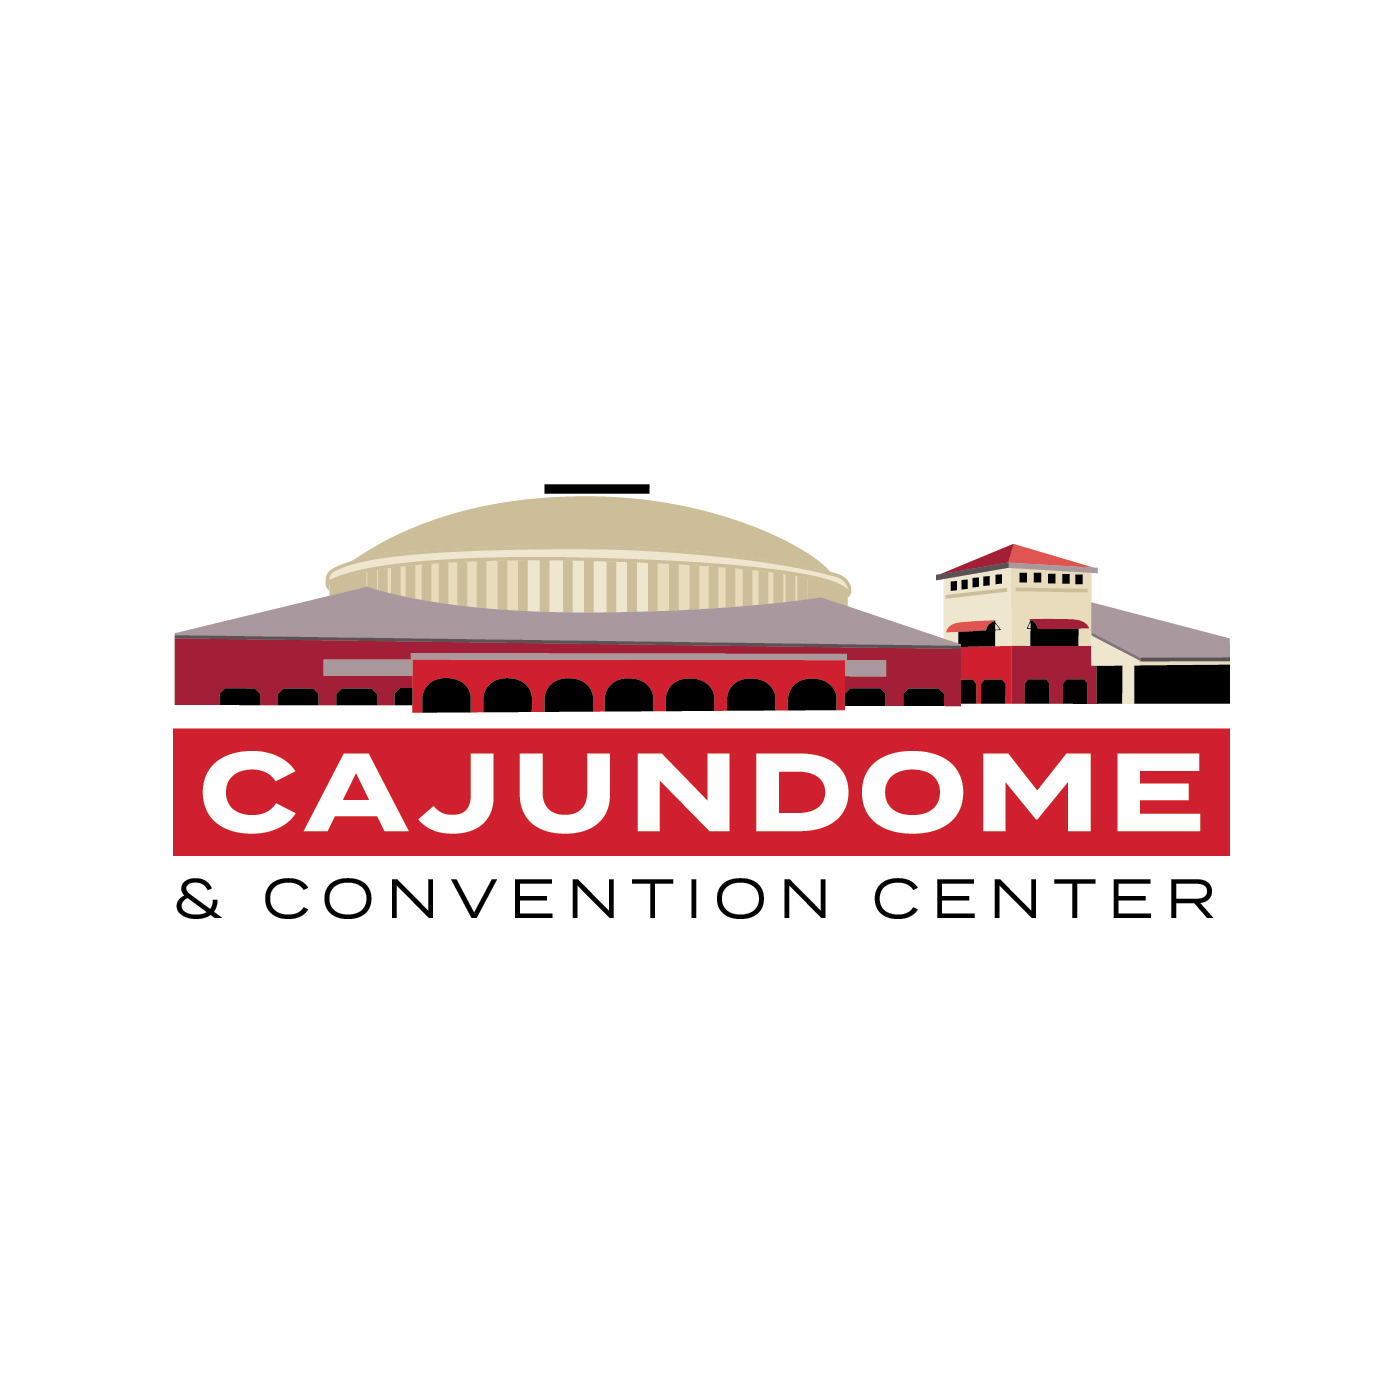 Cajundome_darkbackground_redbar_fullwhiteoutline_RGB.png